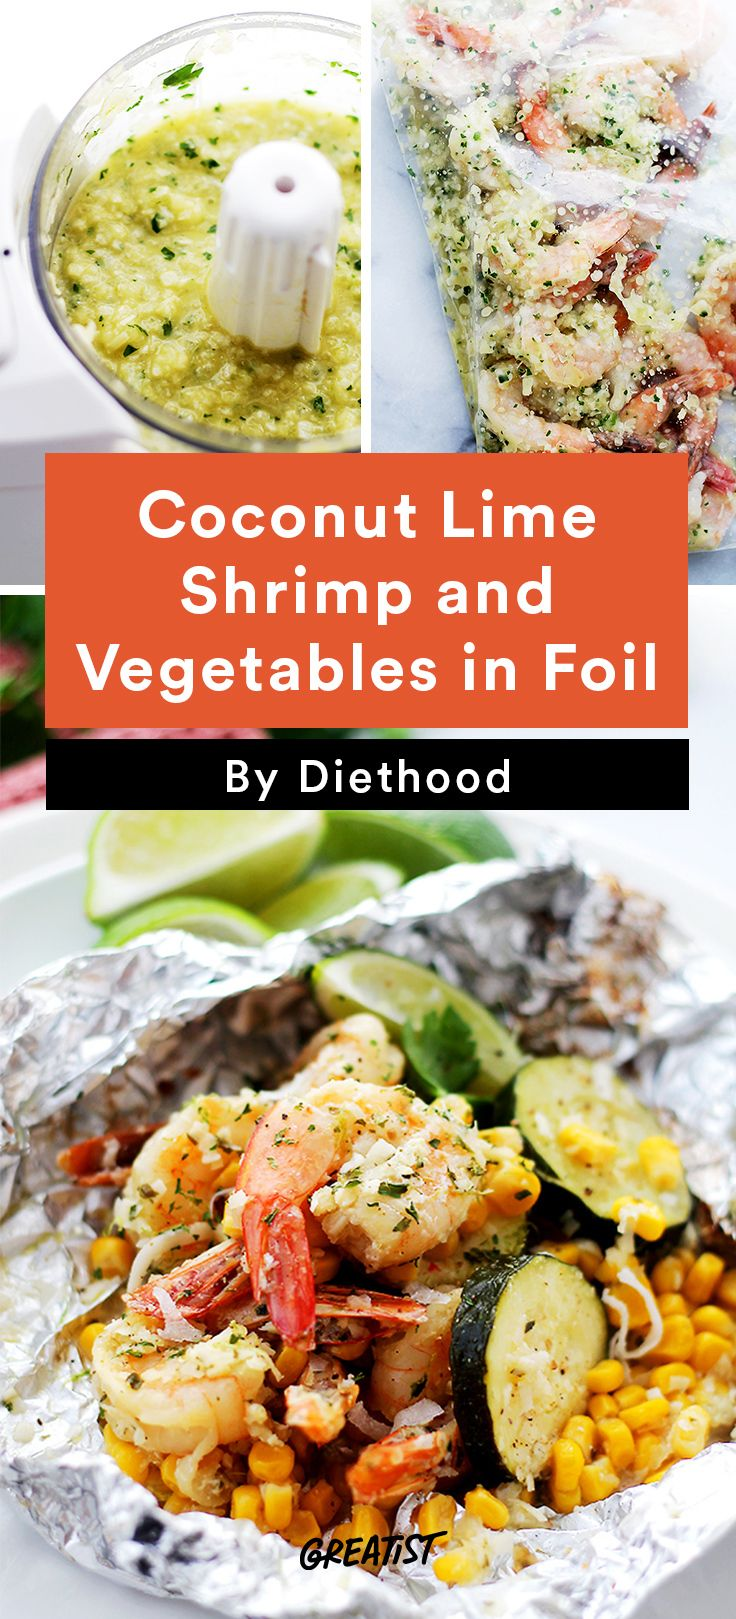 1. Coconut Lime Shrimp and Vegetables in Foil #foilpacket #recipes http://greatist.com/eat/foil-packet-recipes-for-easy-cleanup